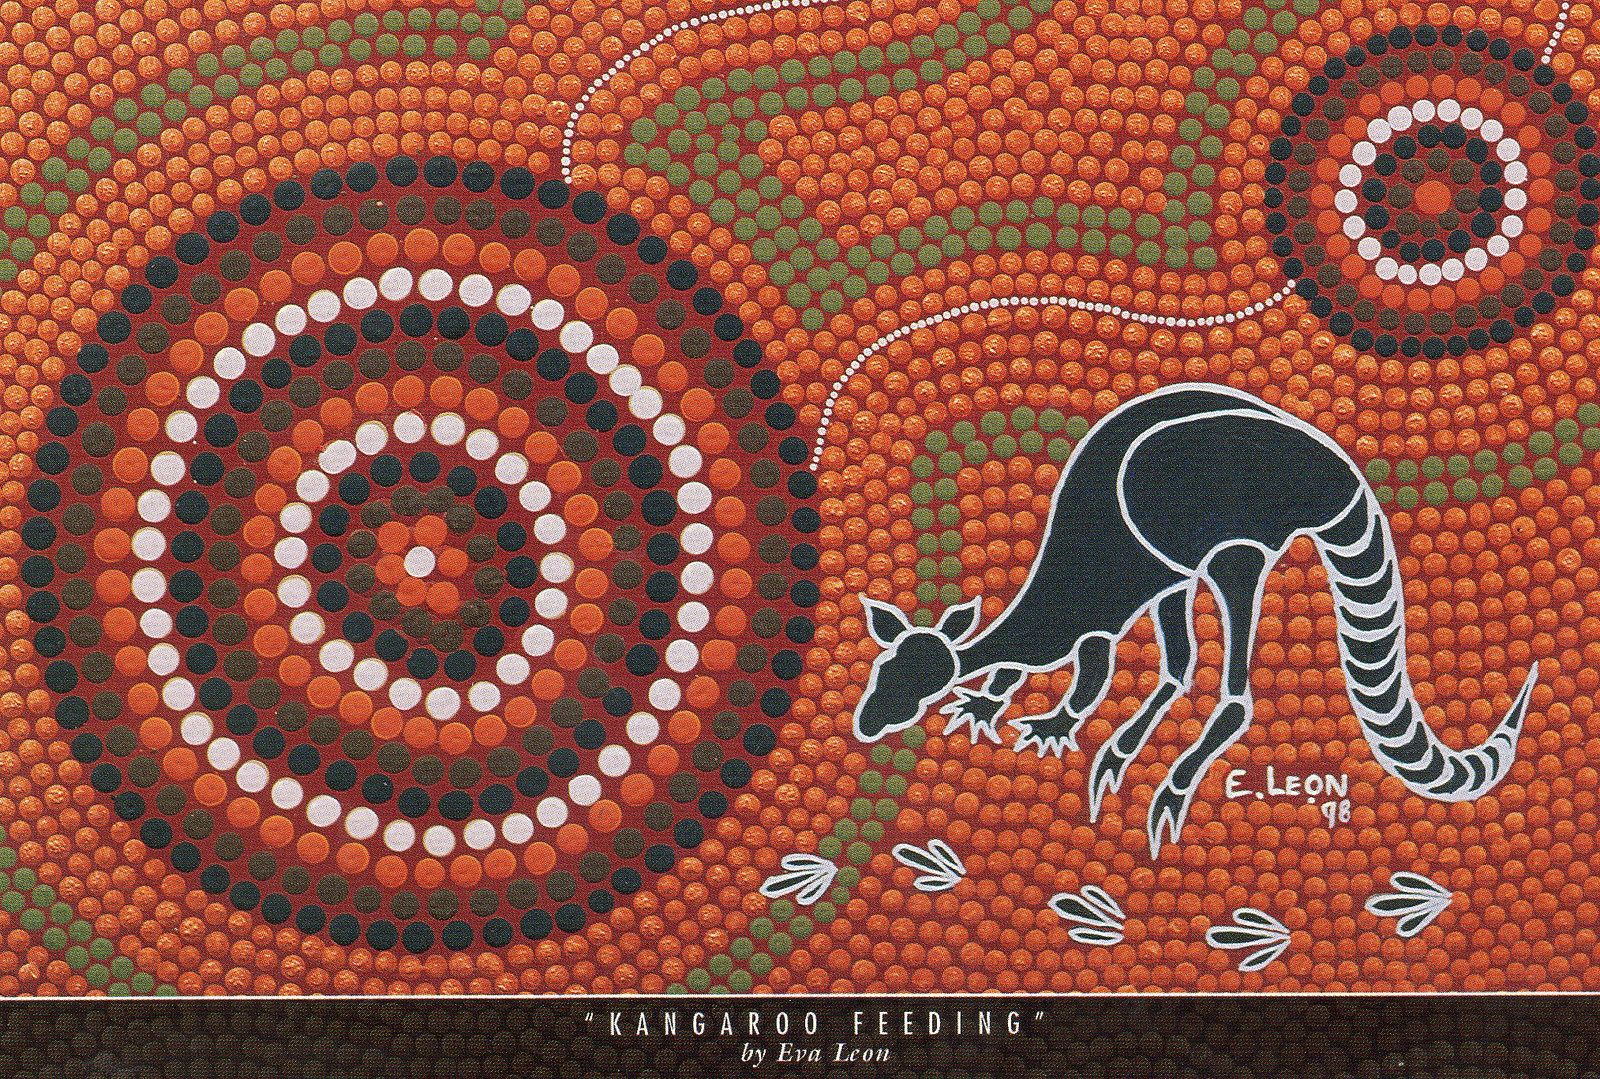 8821b785607fd4 AU-242457 Indigenous Aboriginal Art - Kangaroos Feeding - Australia. |  Flickr - Photo Sharing!